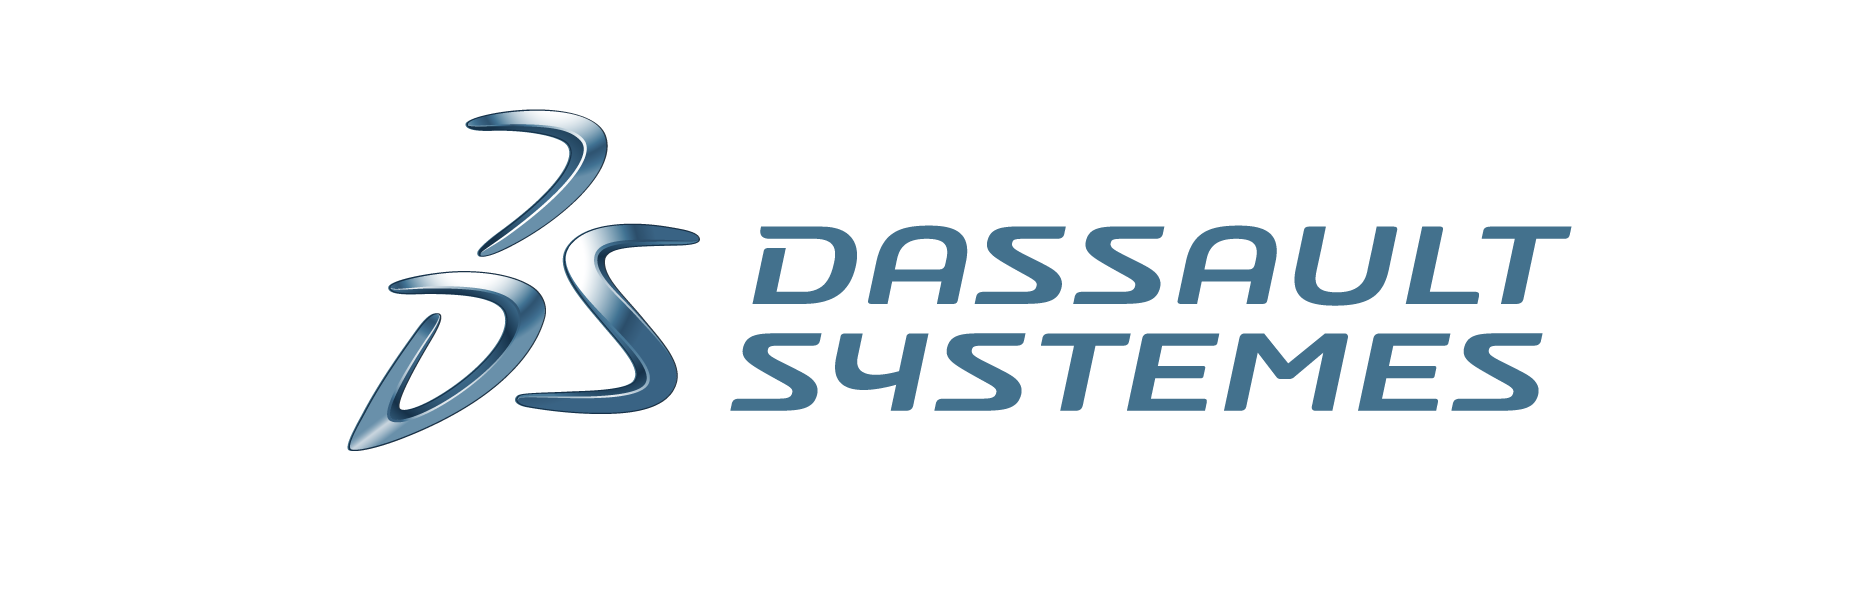 3D Software Company Dassault Systemes to Purchase Accelrys for $750 Million